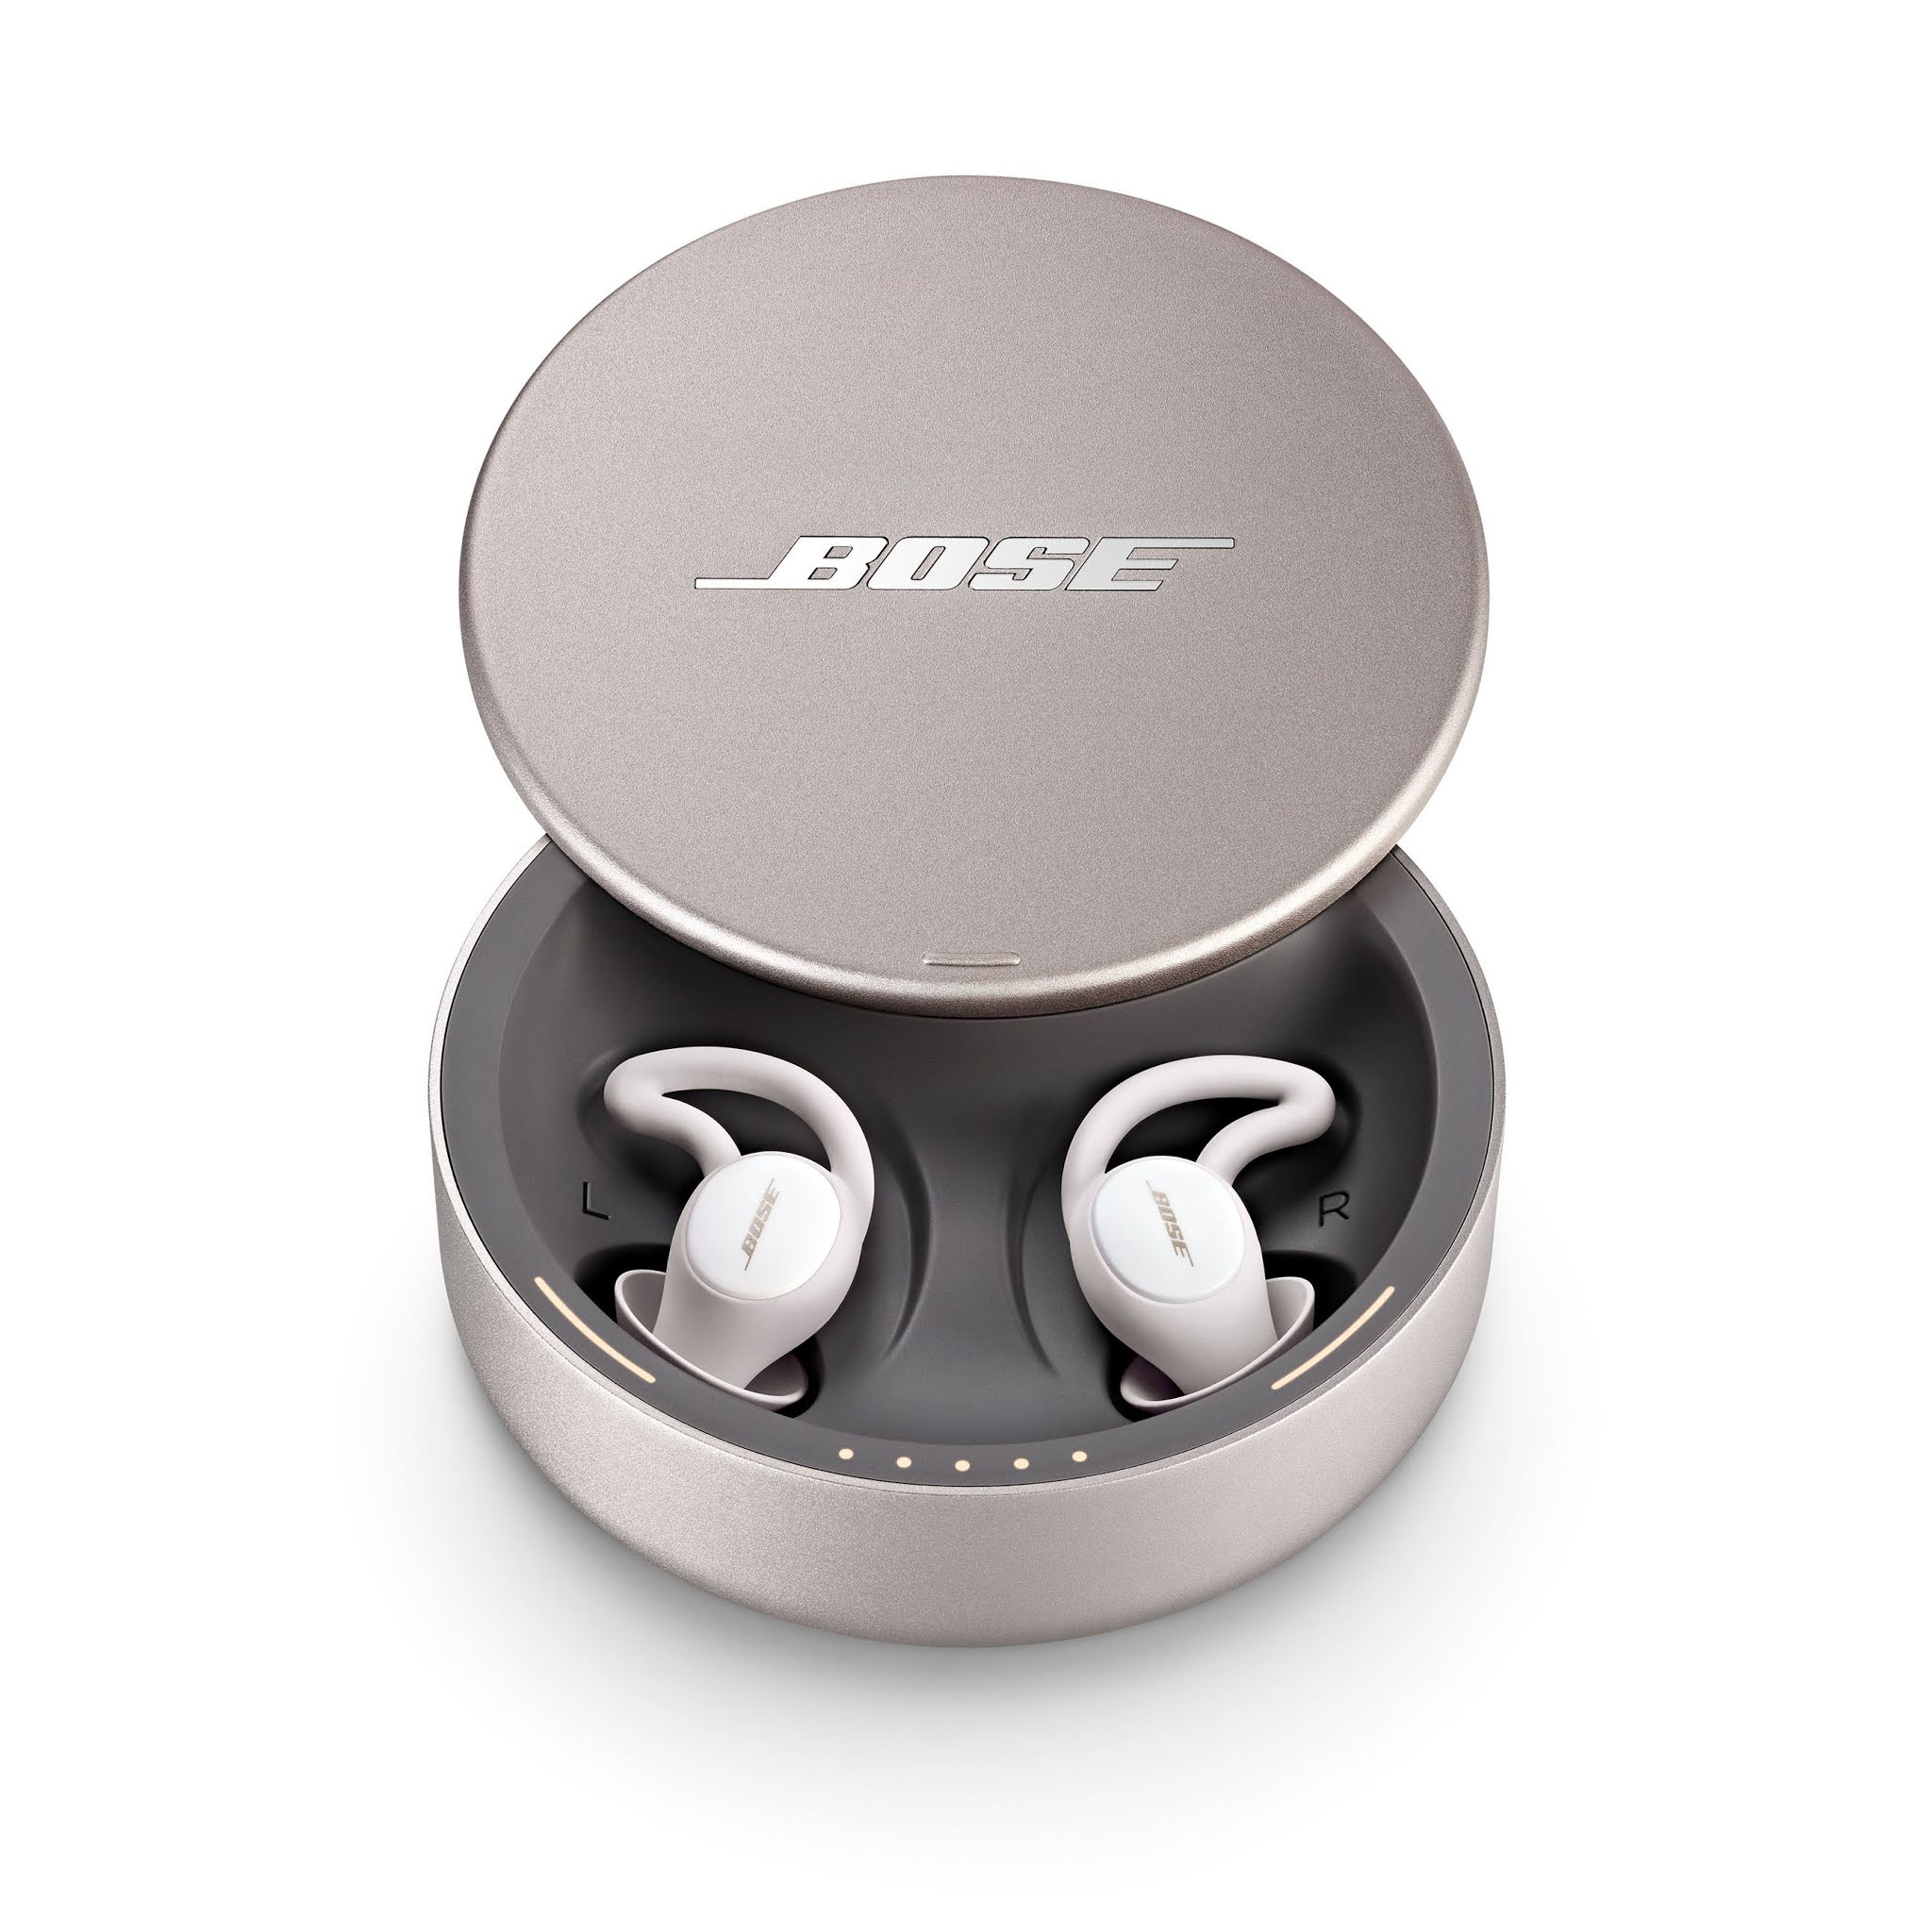 Bose announced Sleepbuds II